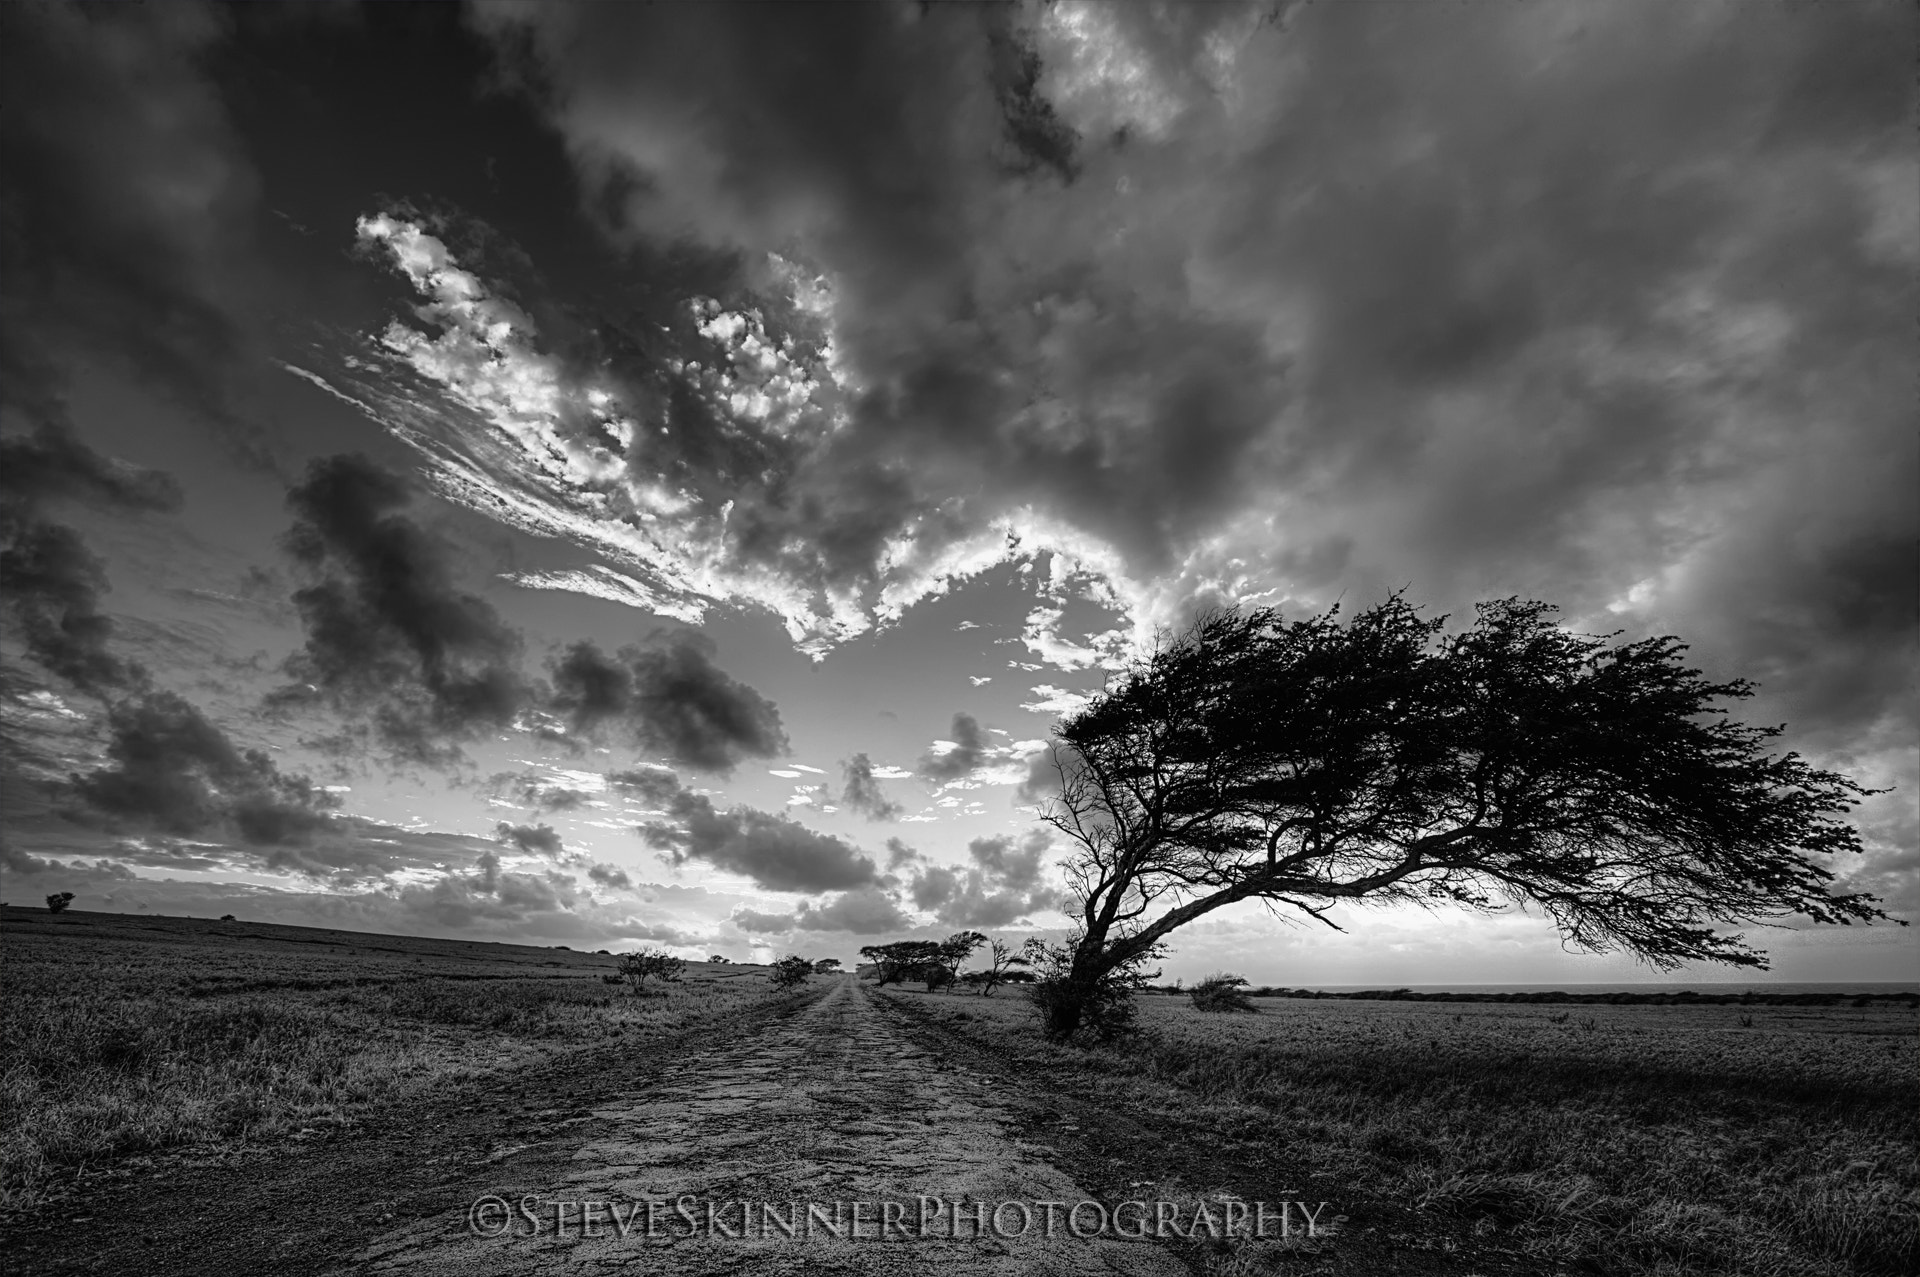 Photograph Forbidden Road Mono - Big Island by Steve Skinner on 500px